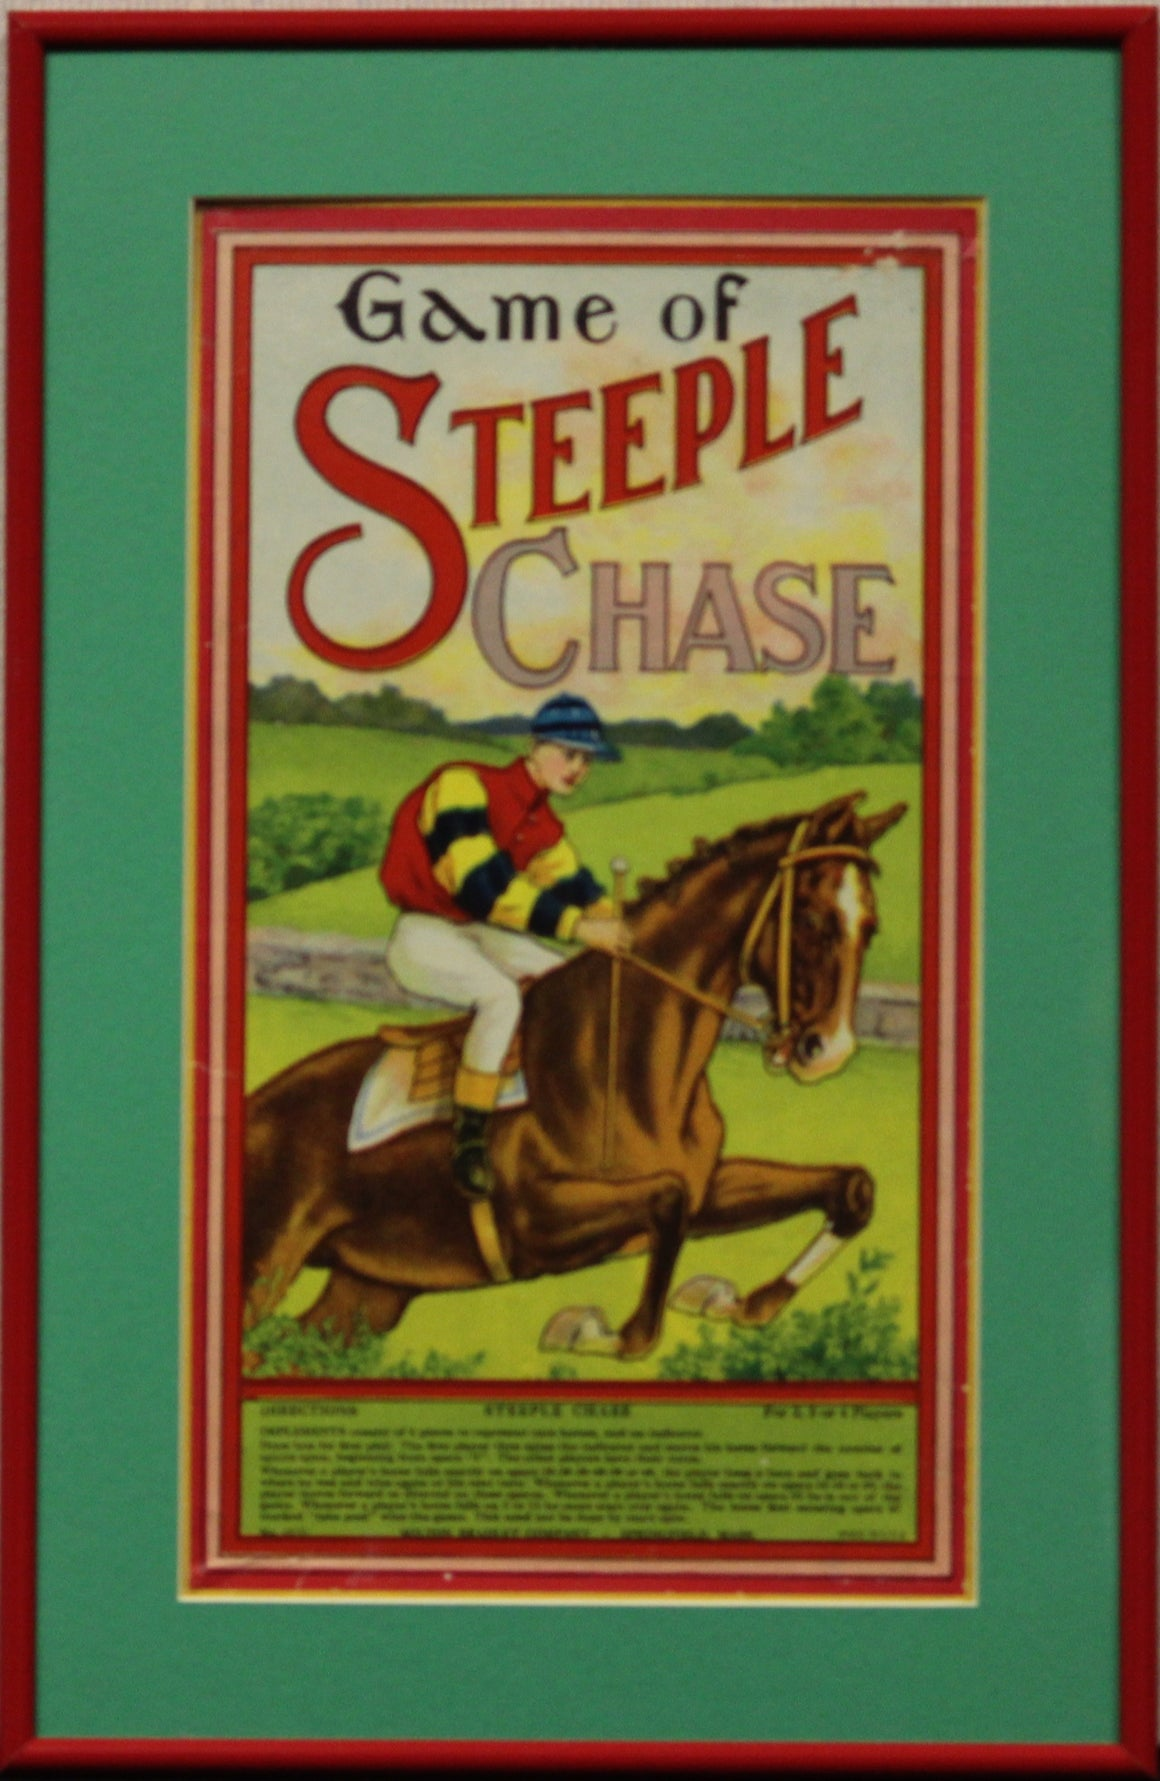 Game of Steeple Chase